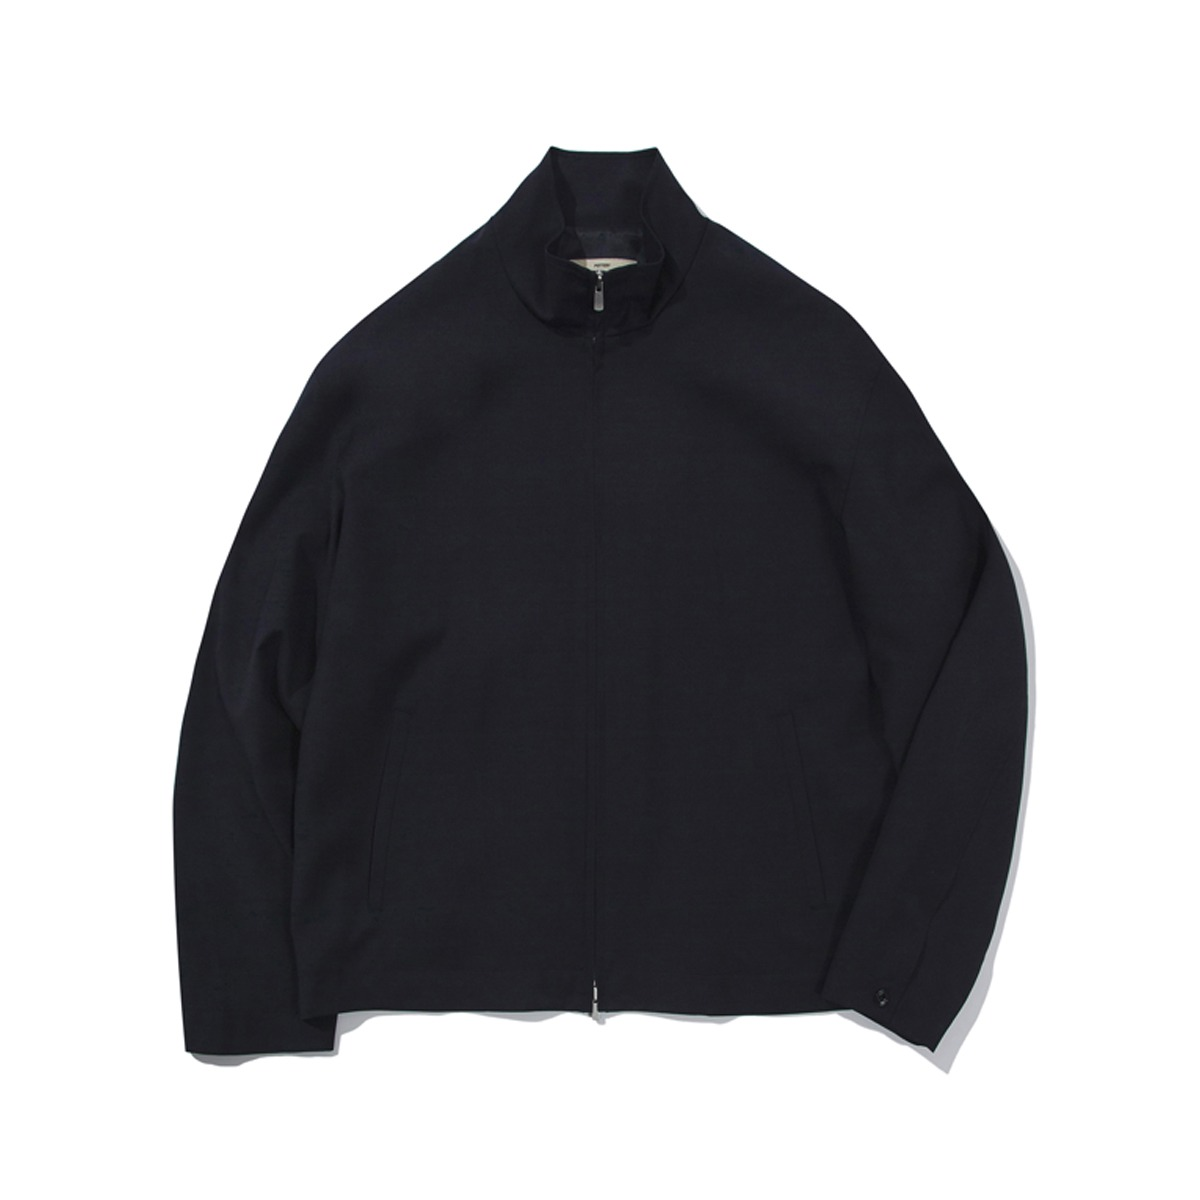 [POTTERY] WOOL TRACK JACKET 'DARK NAVY'